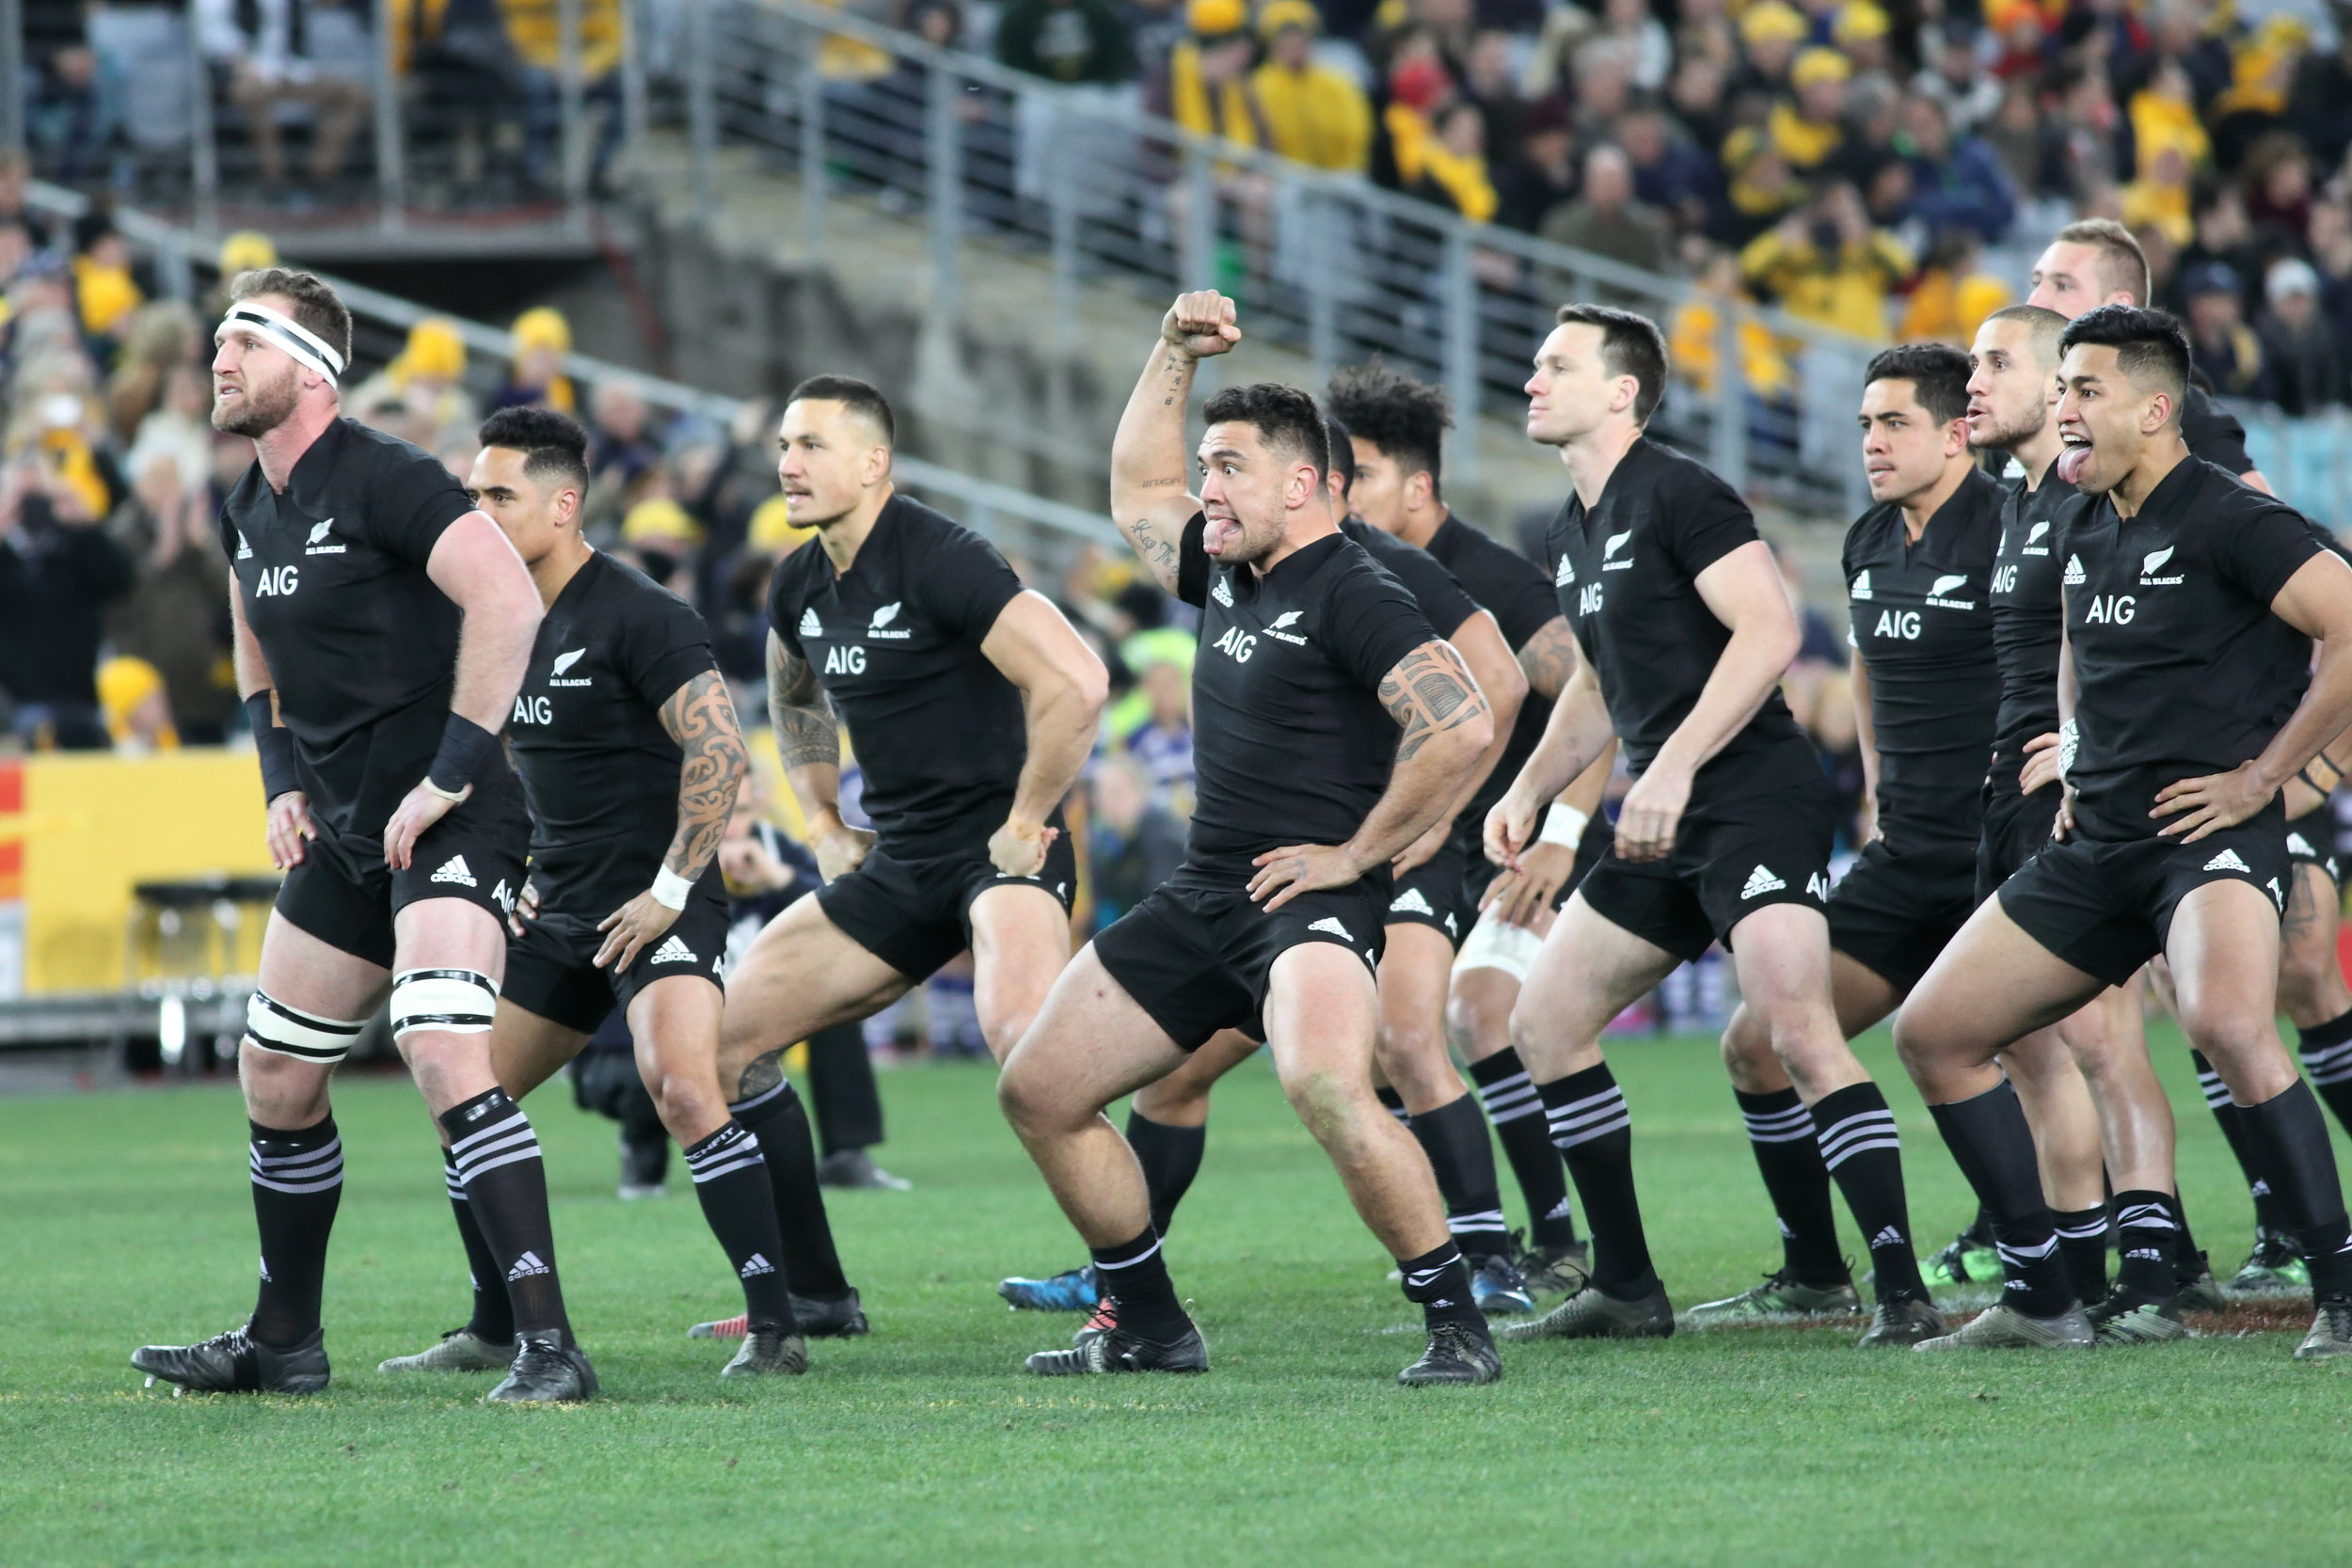 New Zealand performing their infamous 'Haka'.